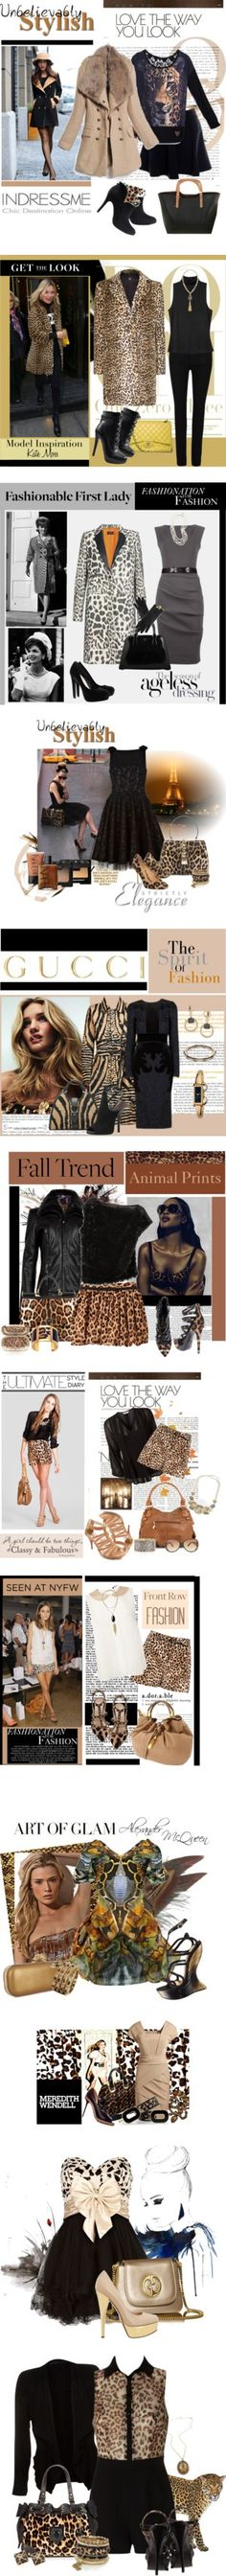 """Animal Print"" by elena-indolfi on Polyvore"